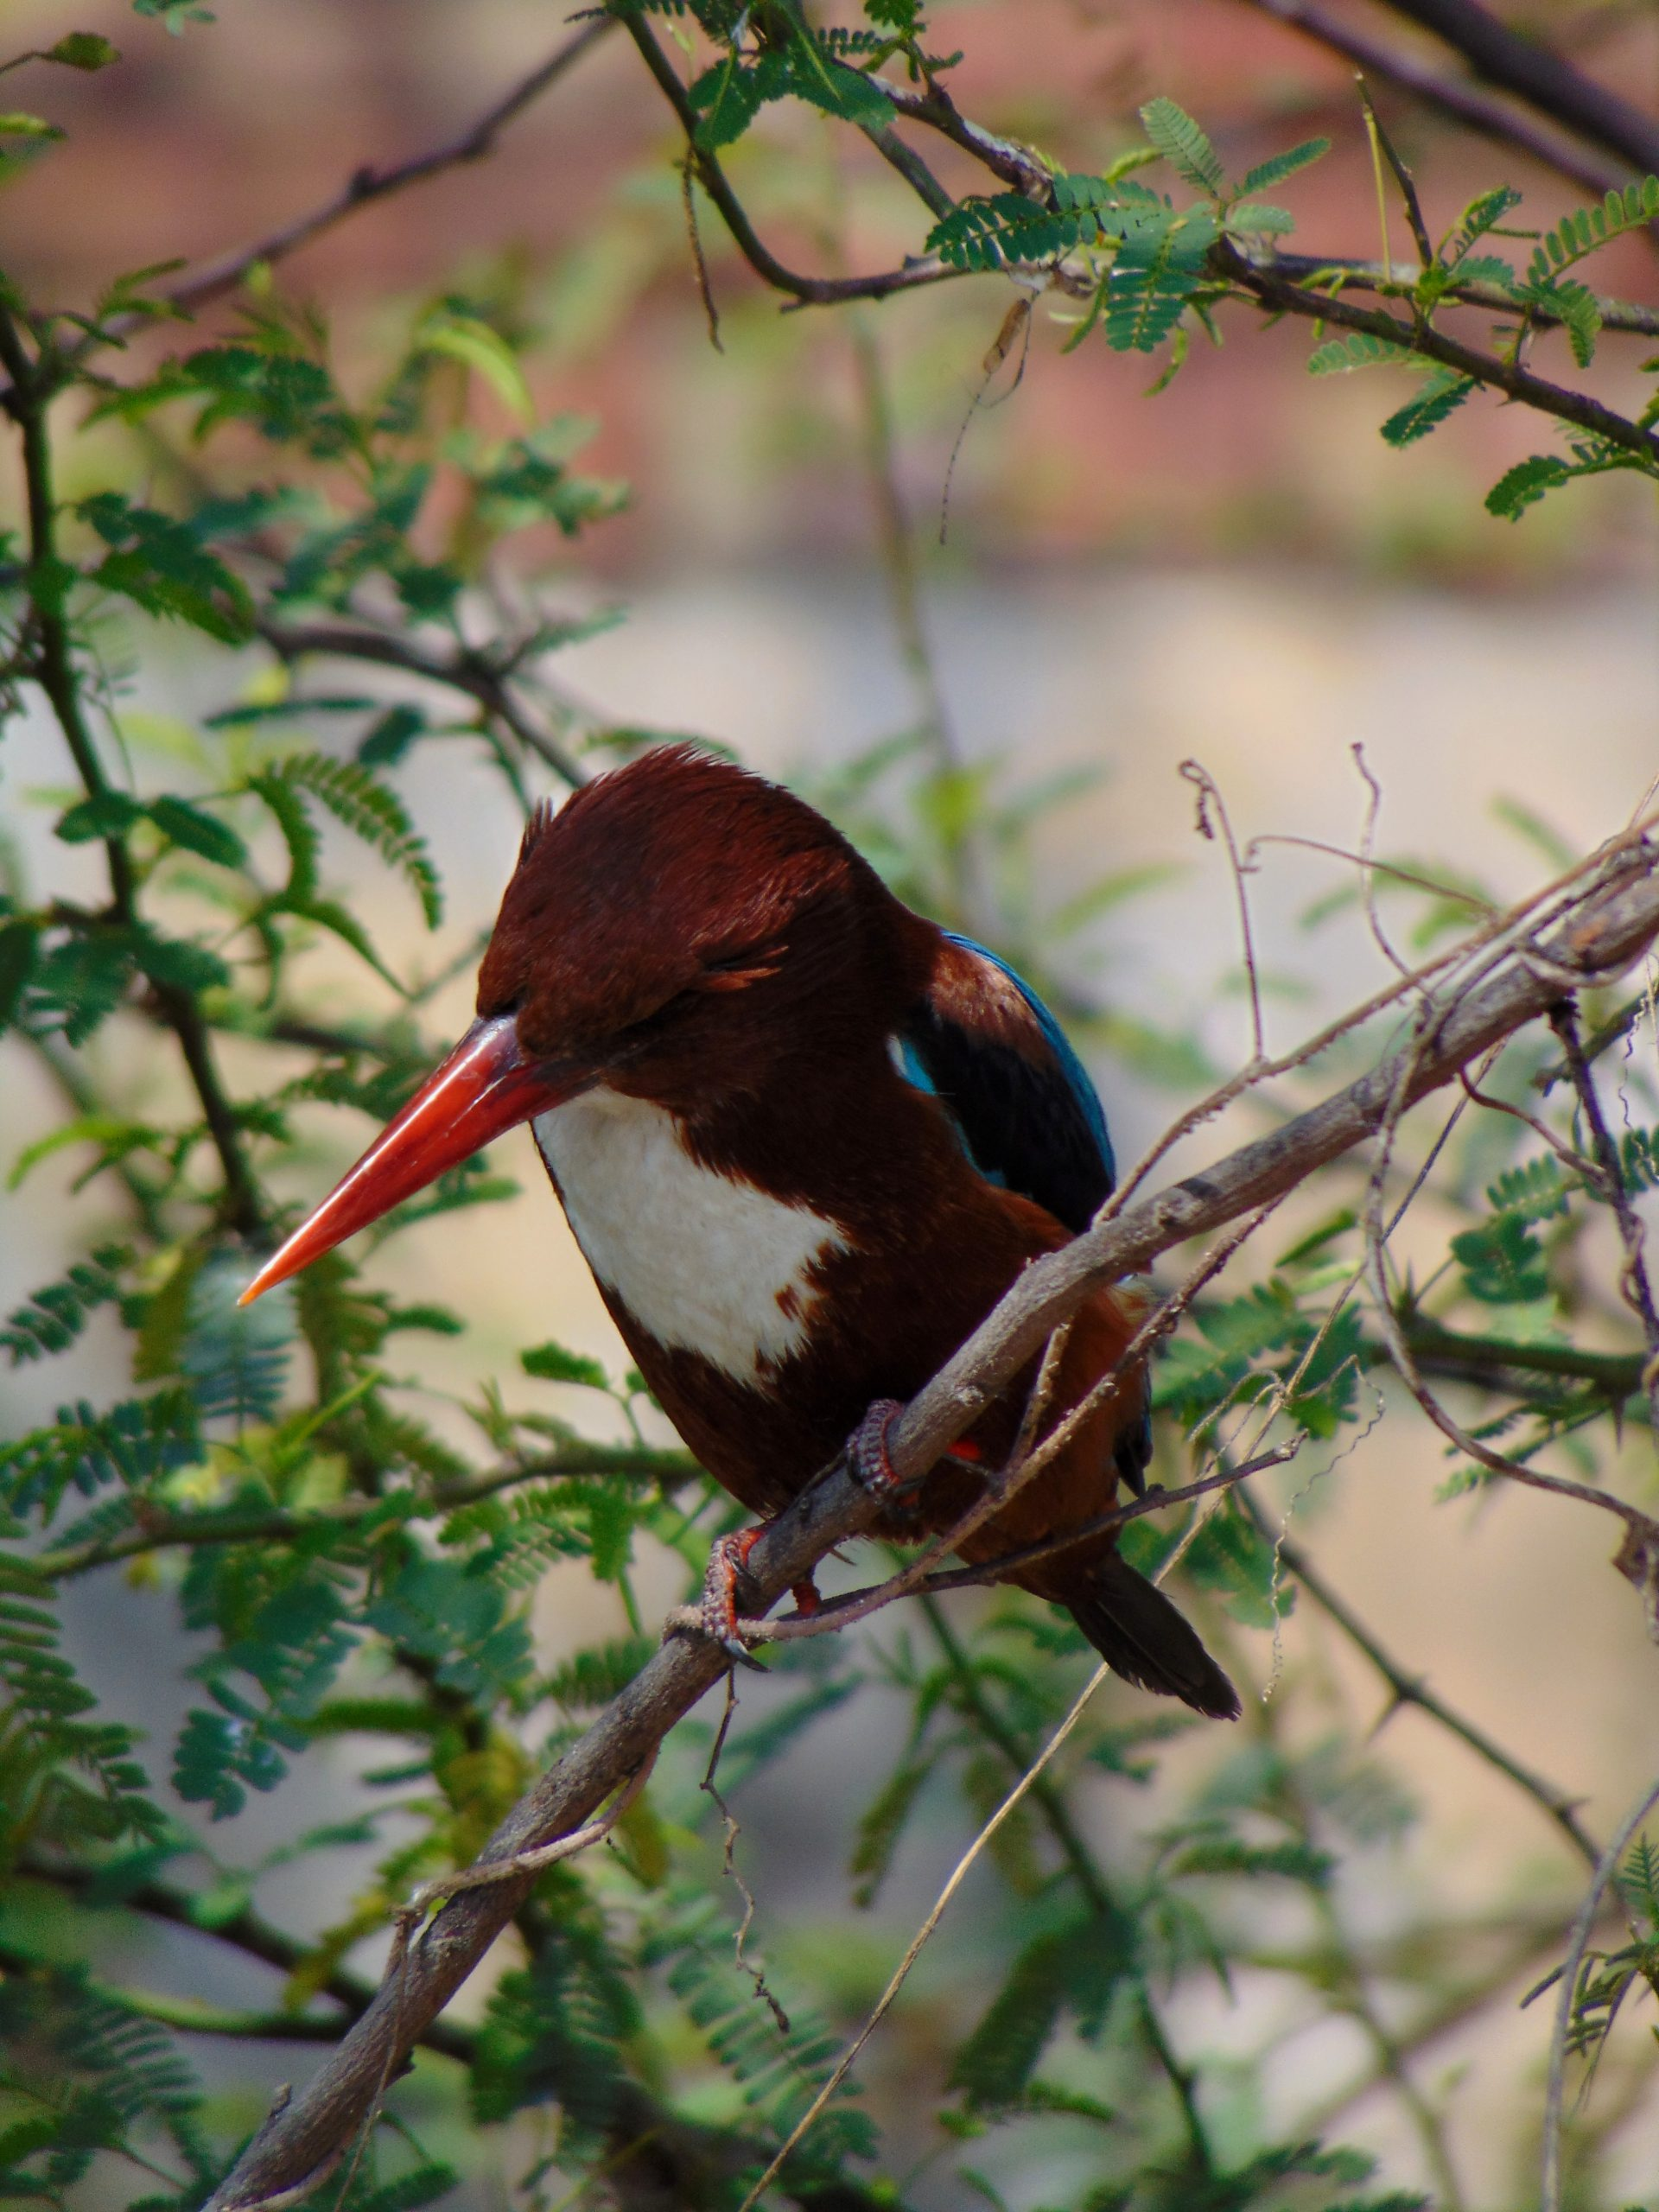 A Kingfisher bird on a branch